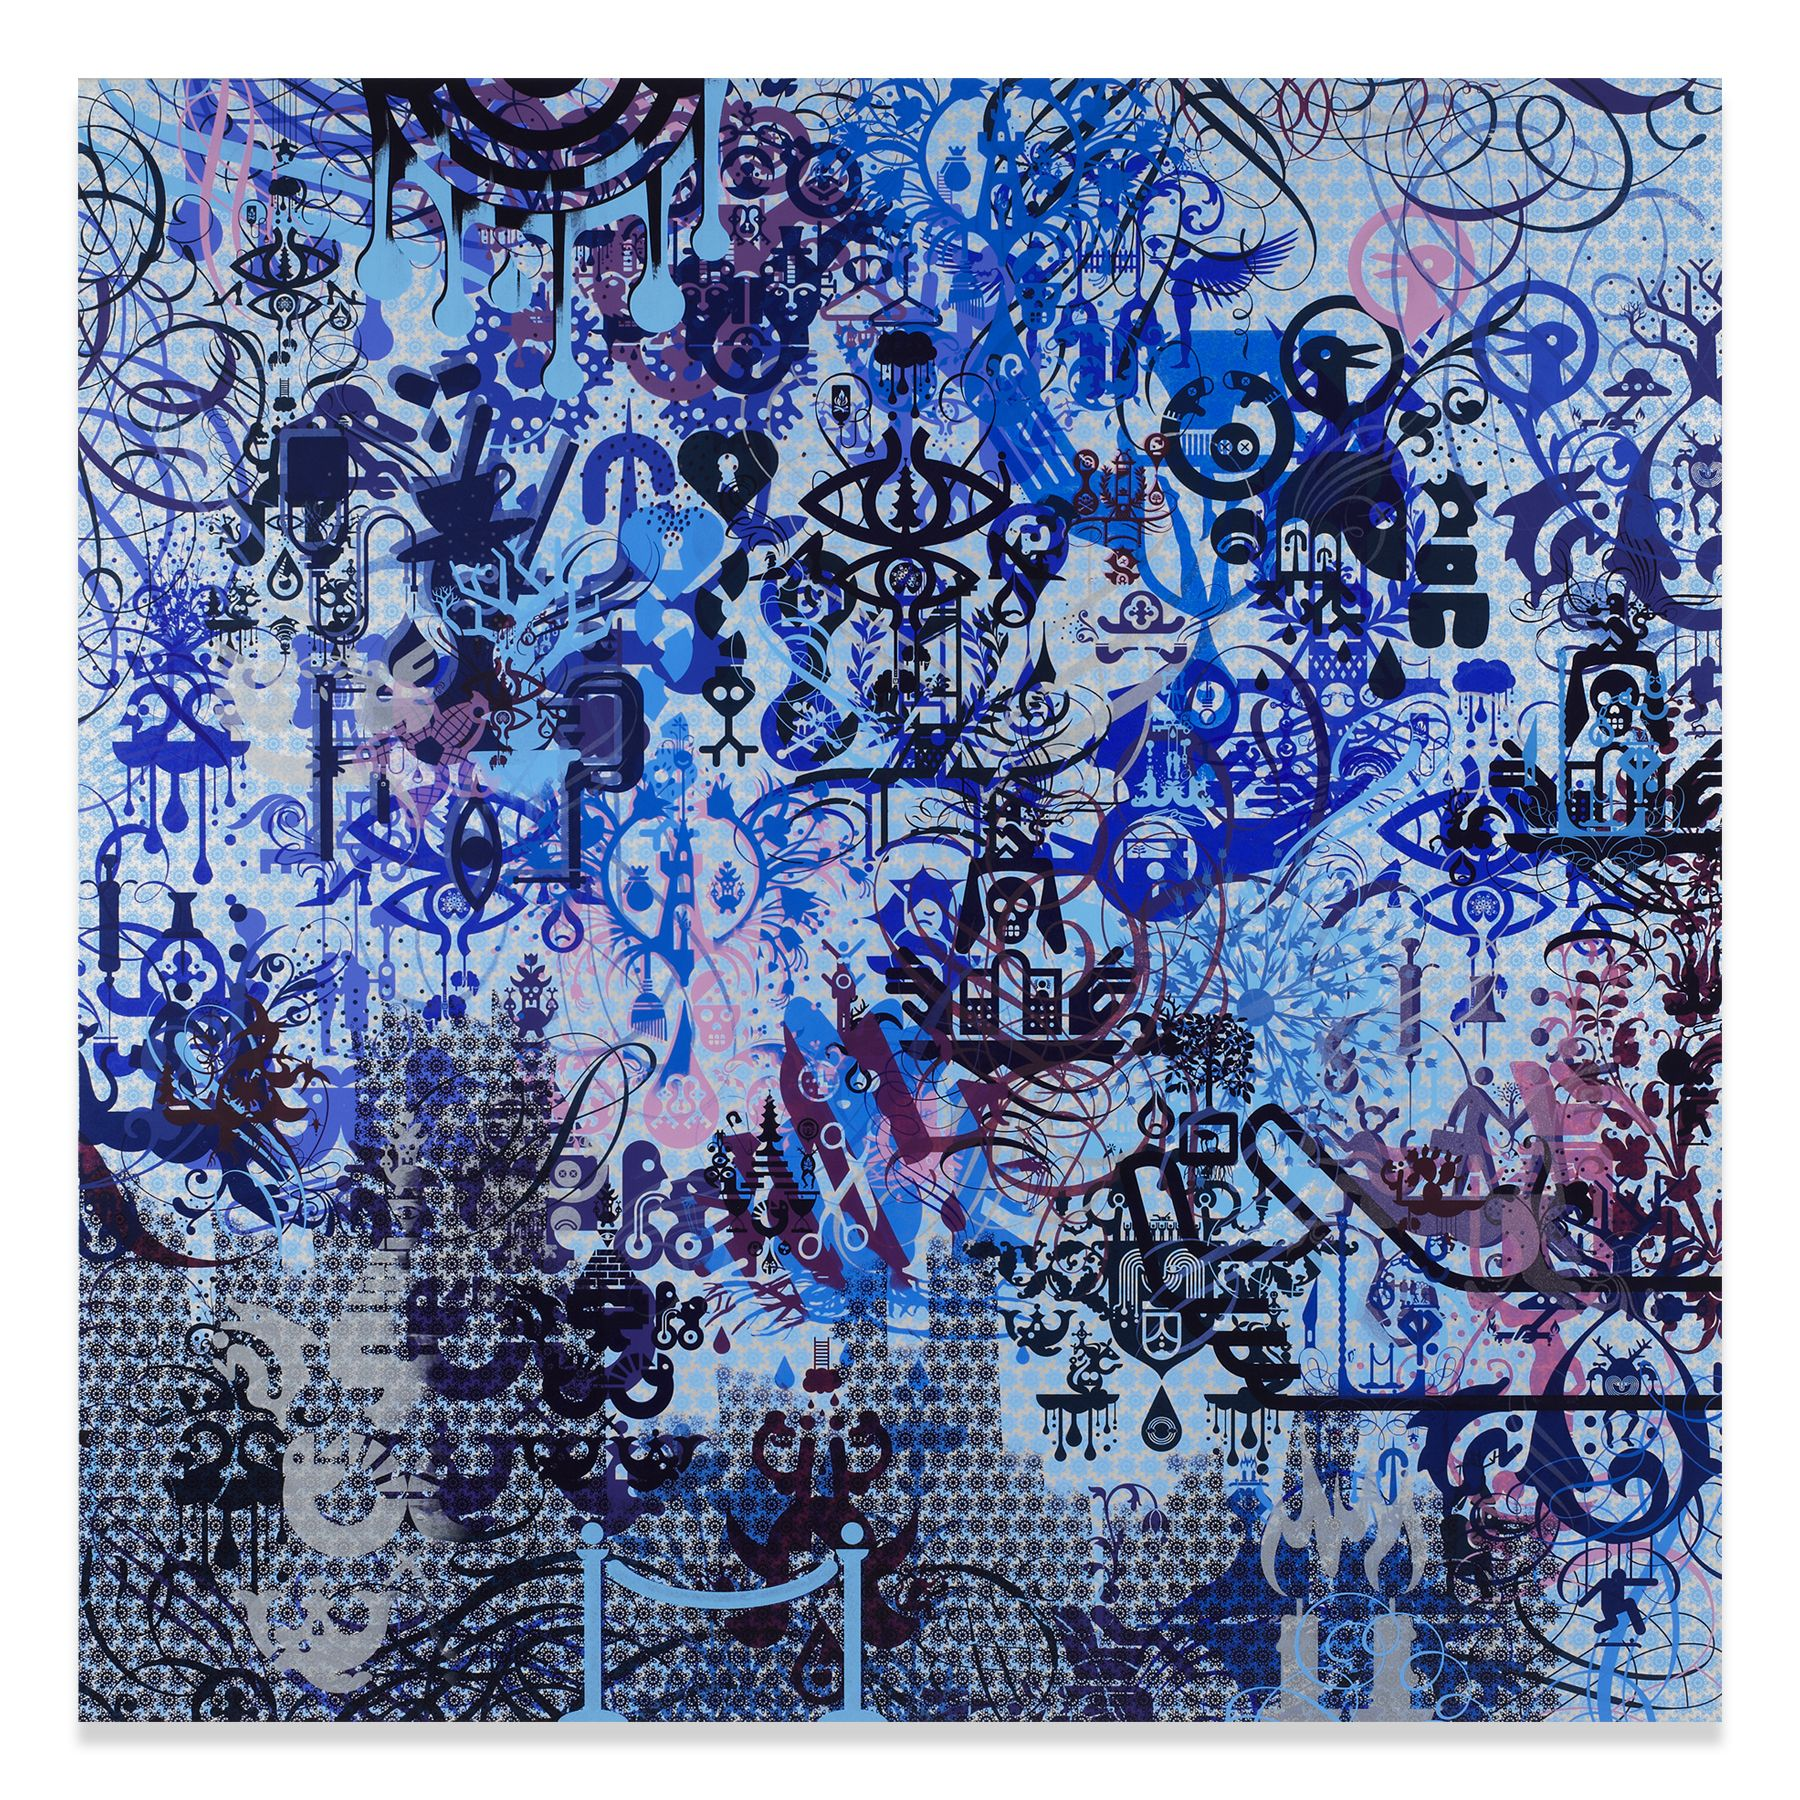 A Willing Victim, 2015,Acrylic on canvas,72 x 72 inches,182.9 x 182.9 cm,MMG#31351